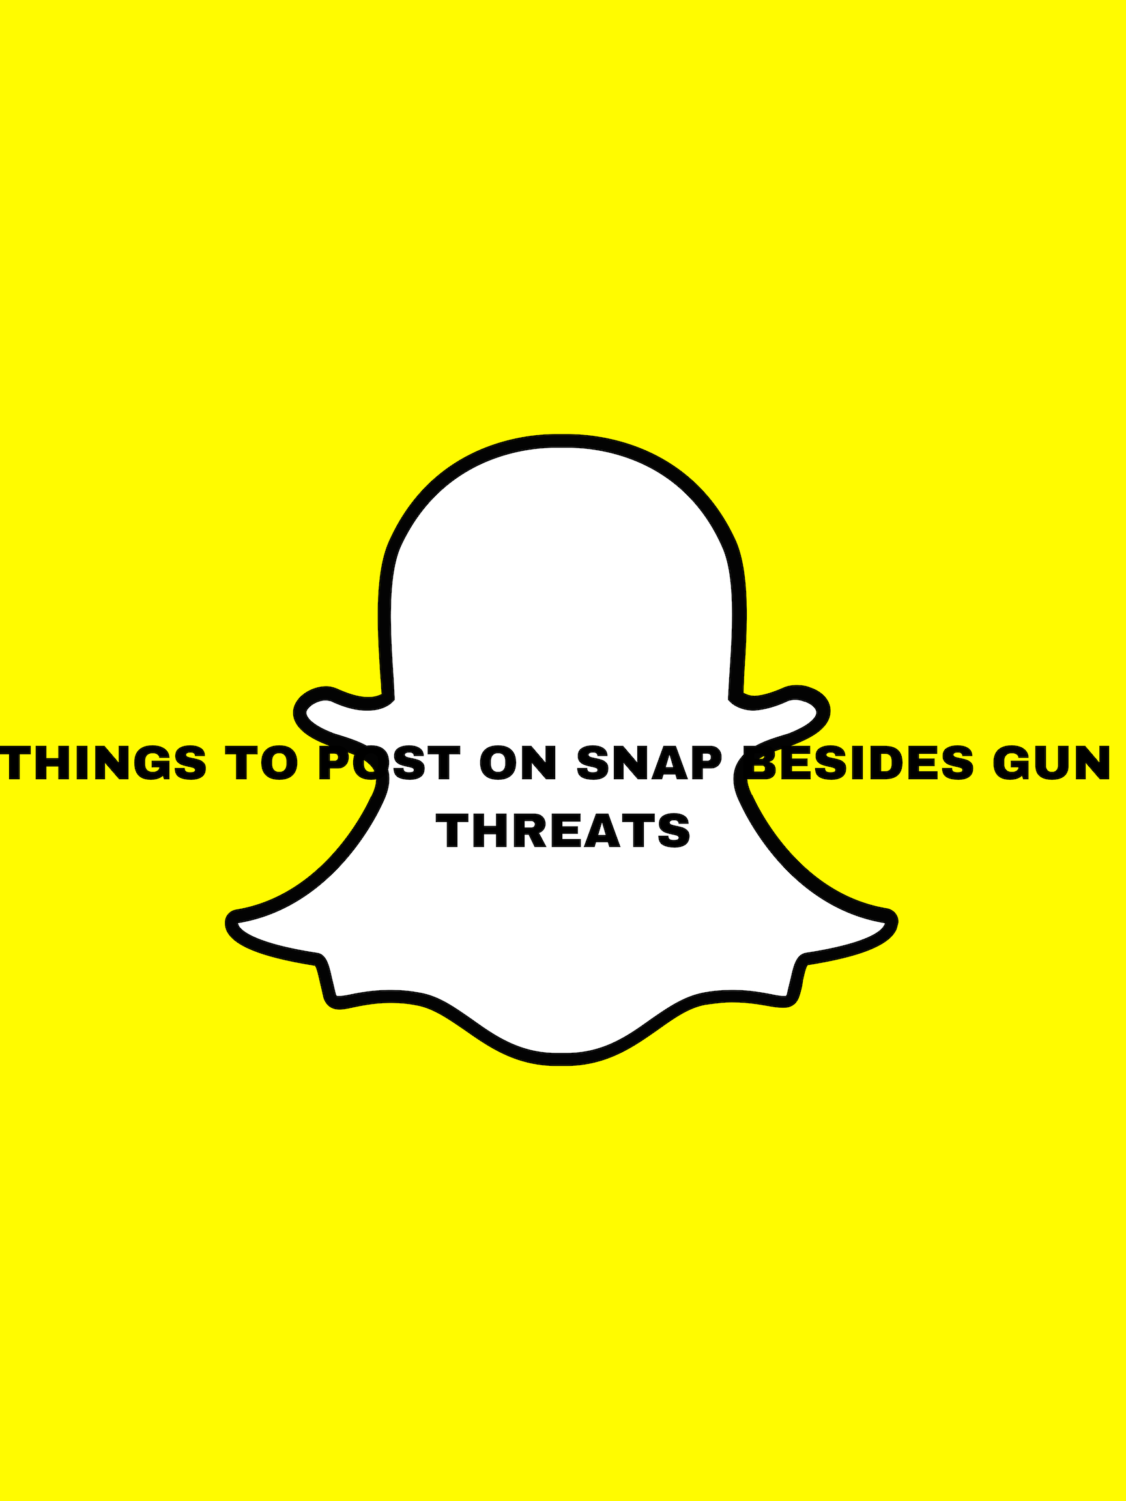 7 Things To Post On Snap Besides Threats